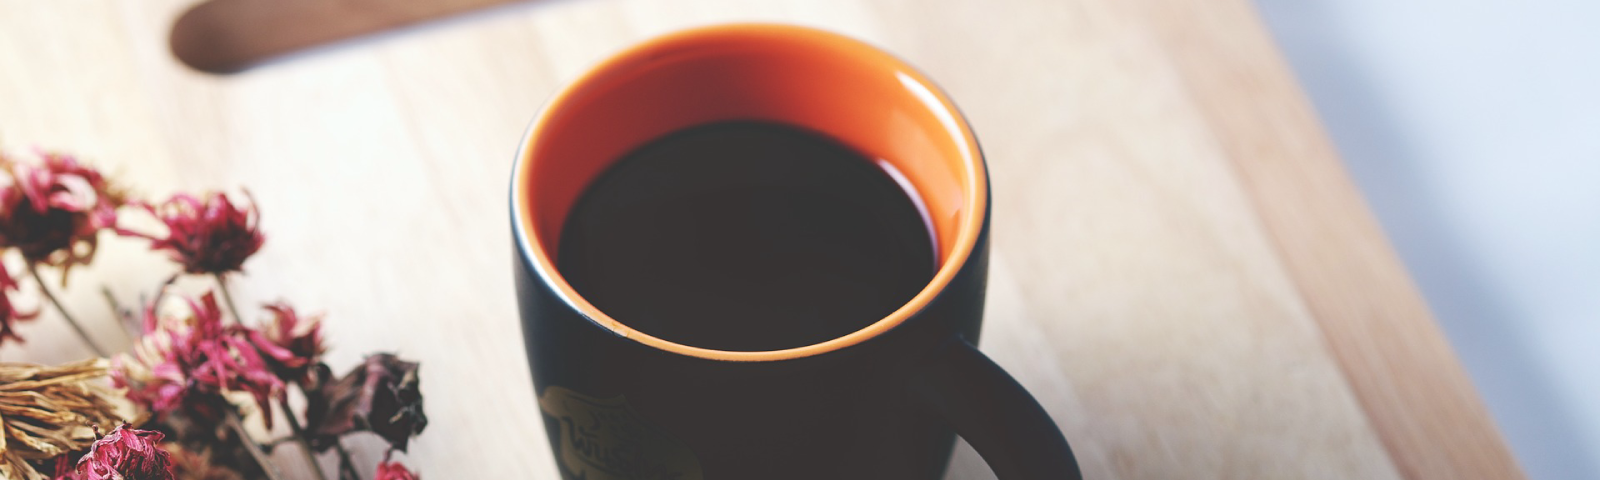 BF-cafeine-1600x480.png